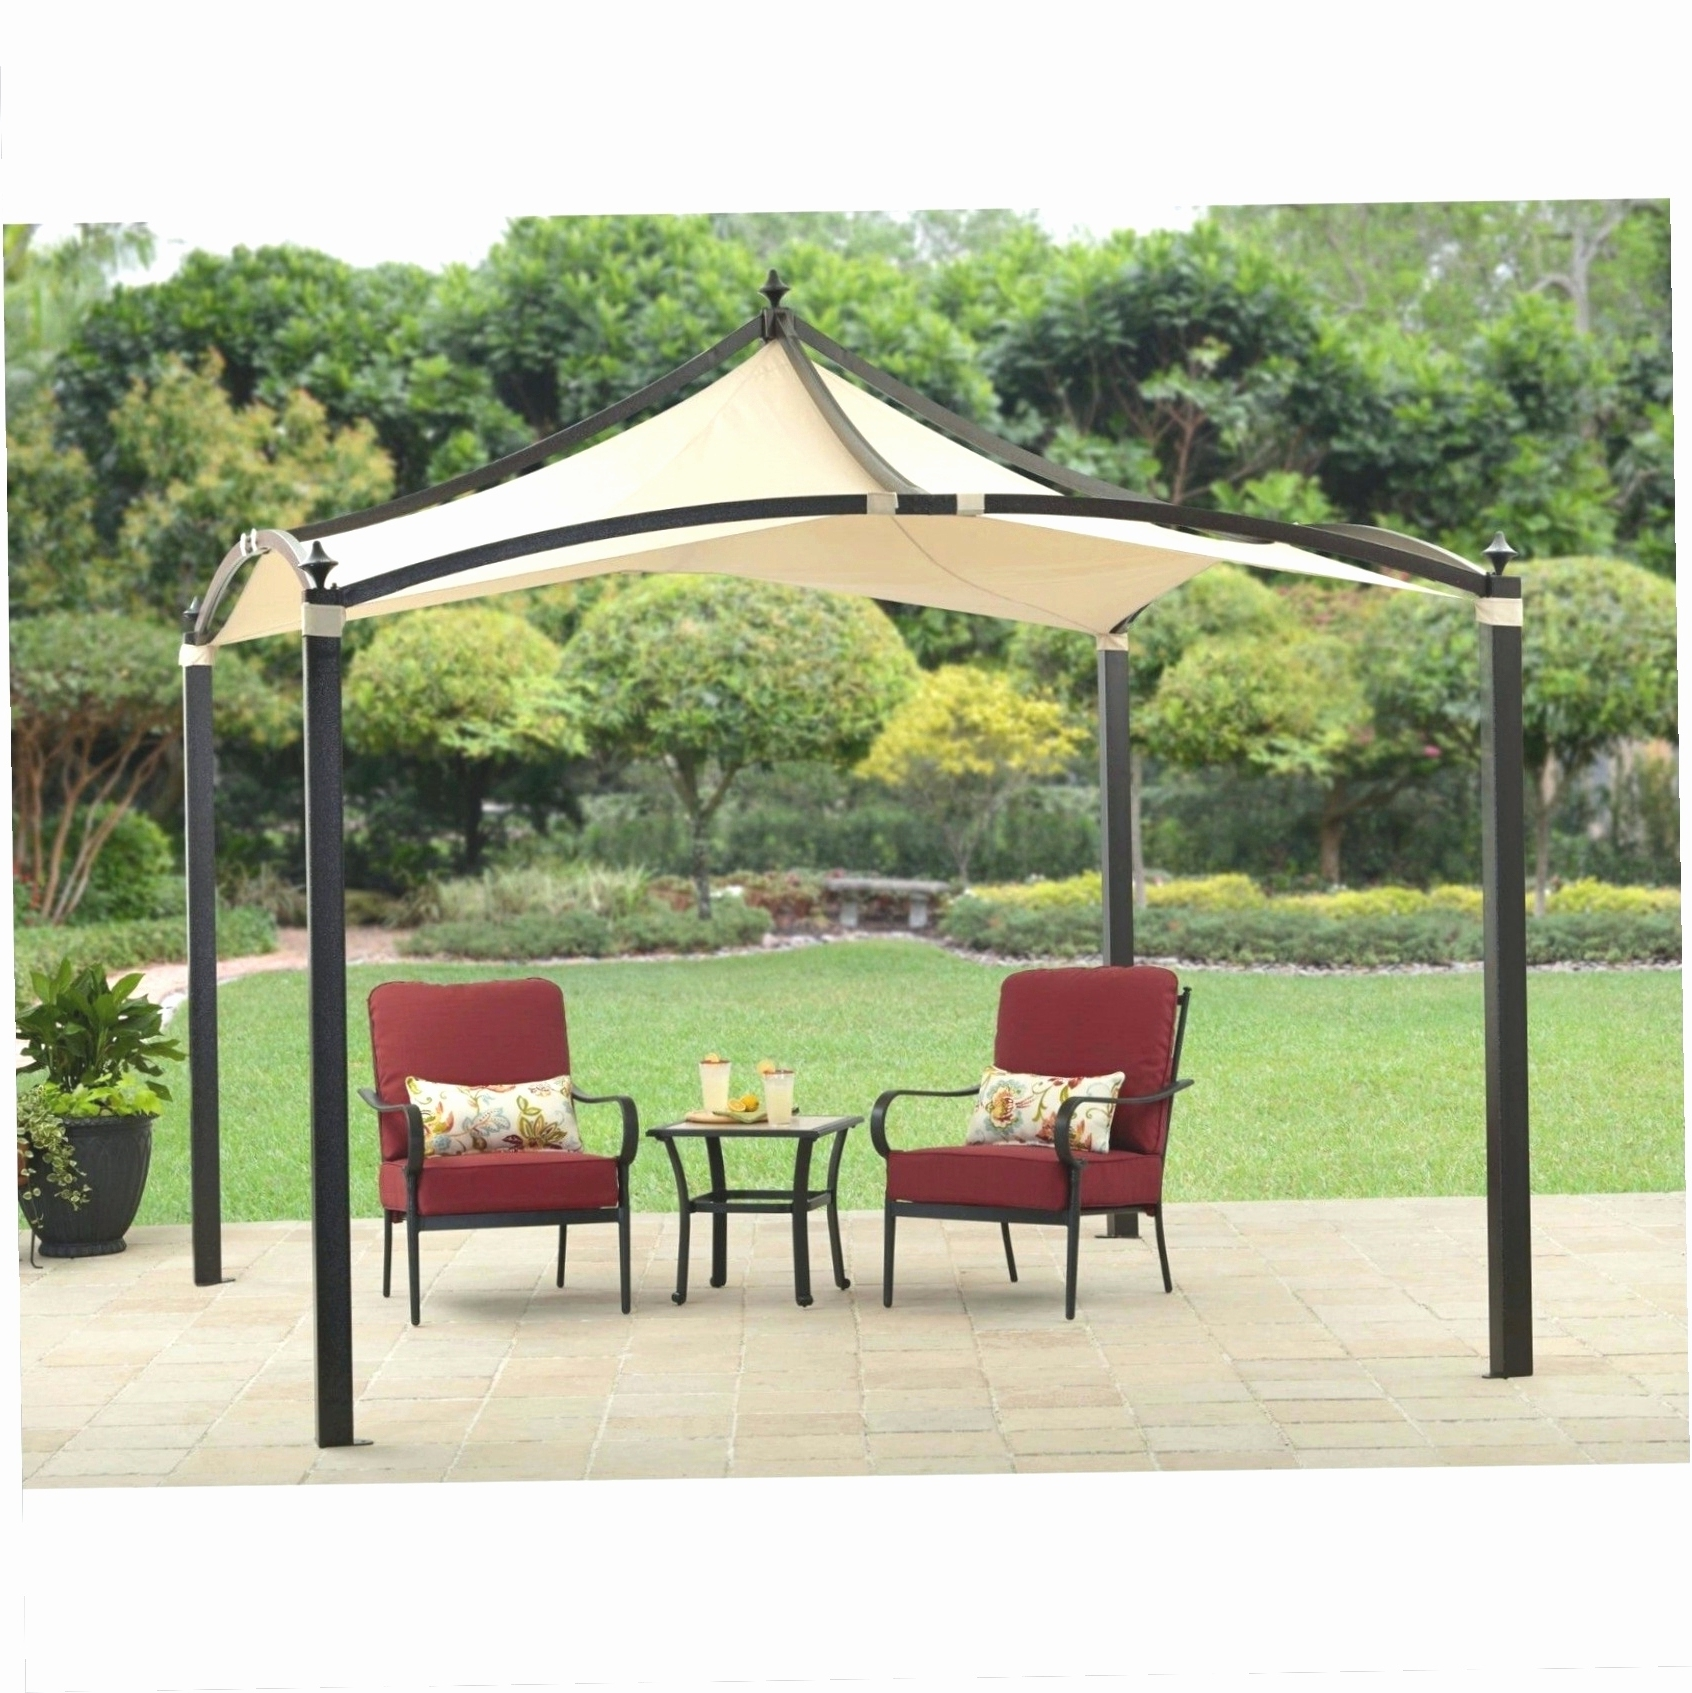 Trendy Mosquito Netting For Patio Umbrella Unique Patio Ideas 11 Steel Fset Throughout Patio Umbrellas With Netting (View 20 of 20)